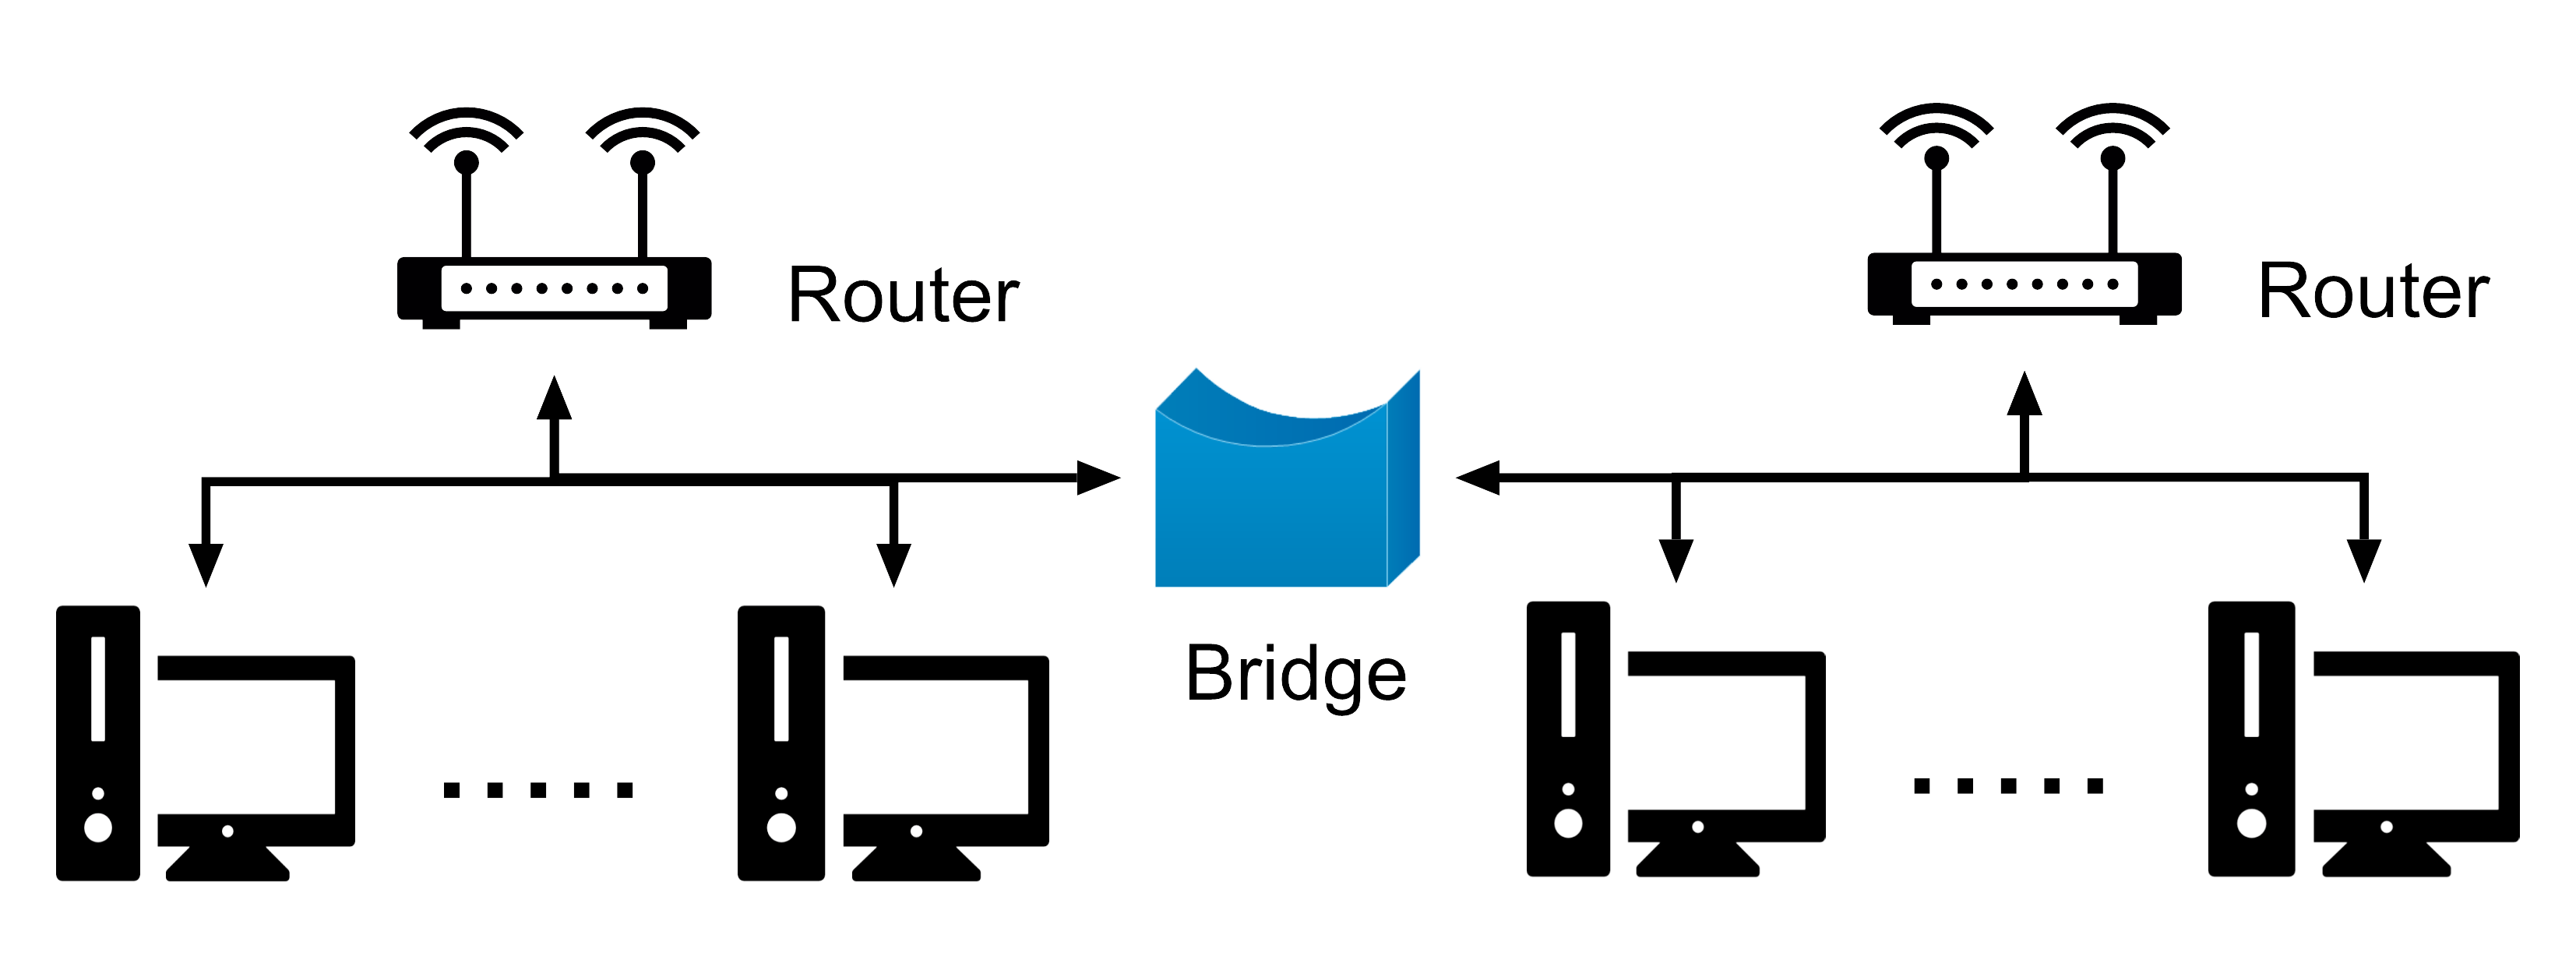 Compare Difference Between Router  U0026 Bridge  U2013 Ahirlabs